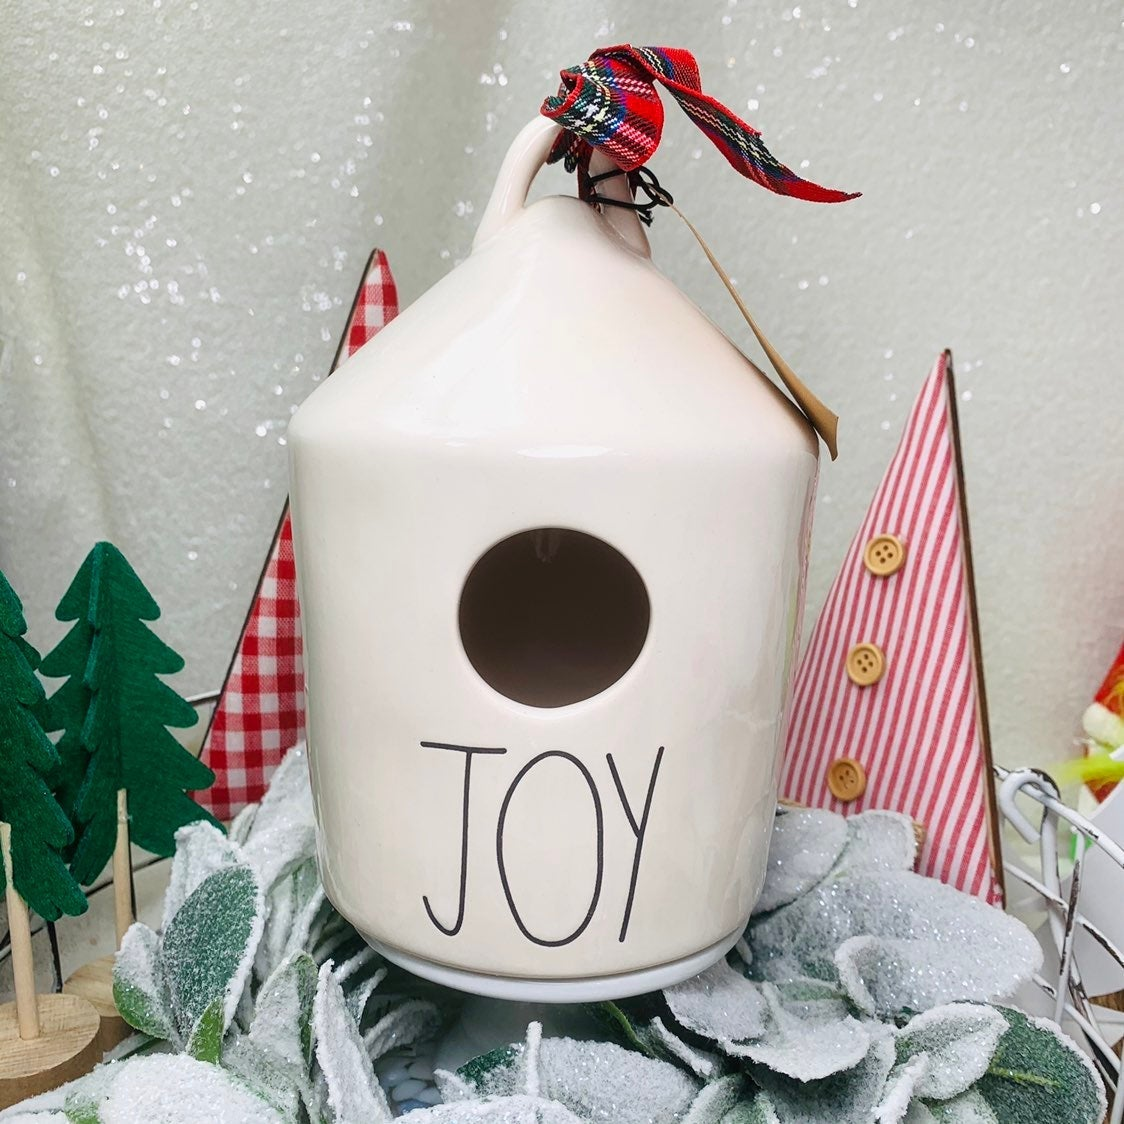 RAE DUNN HOLIDAY JOY BIRDHOUSE